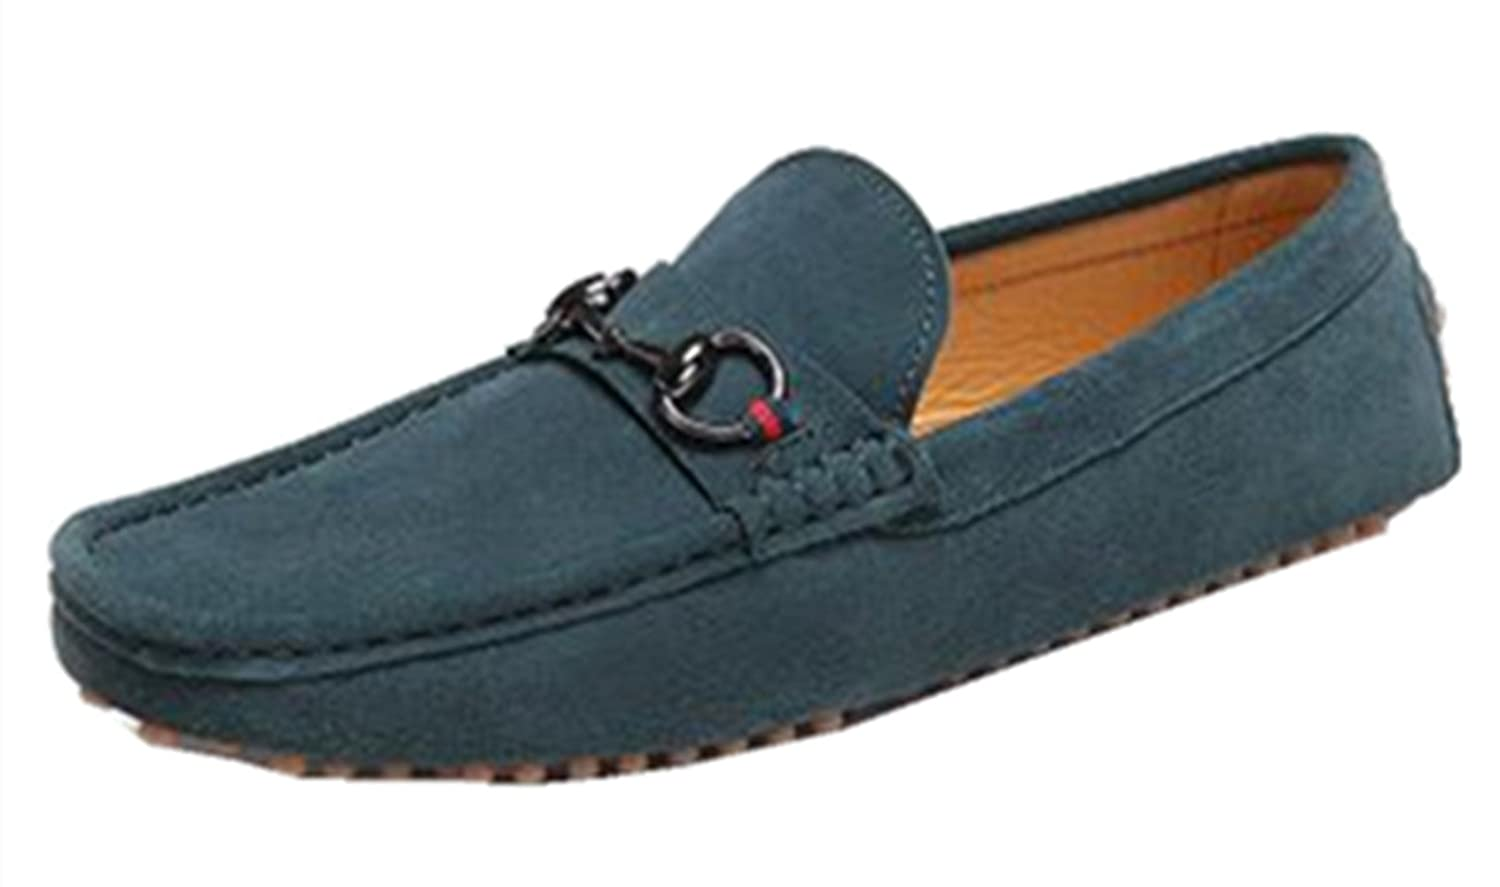 Amazon.com | HAPPYSHOP Genuine Mens Leather Slip-on Loafers Driving Car Shoes Moccasins Black | Loafers & Slip-Ons